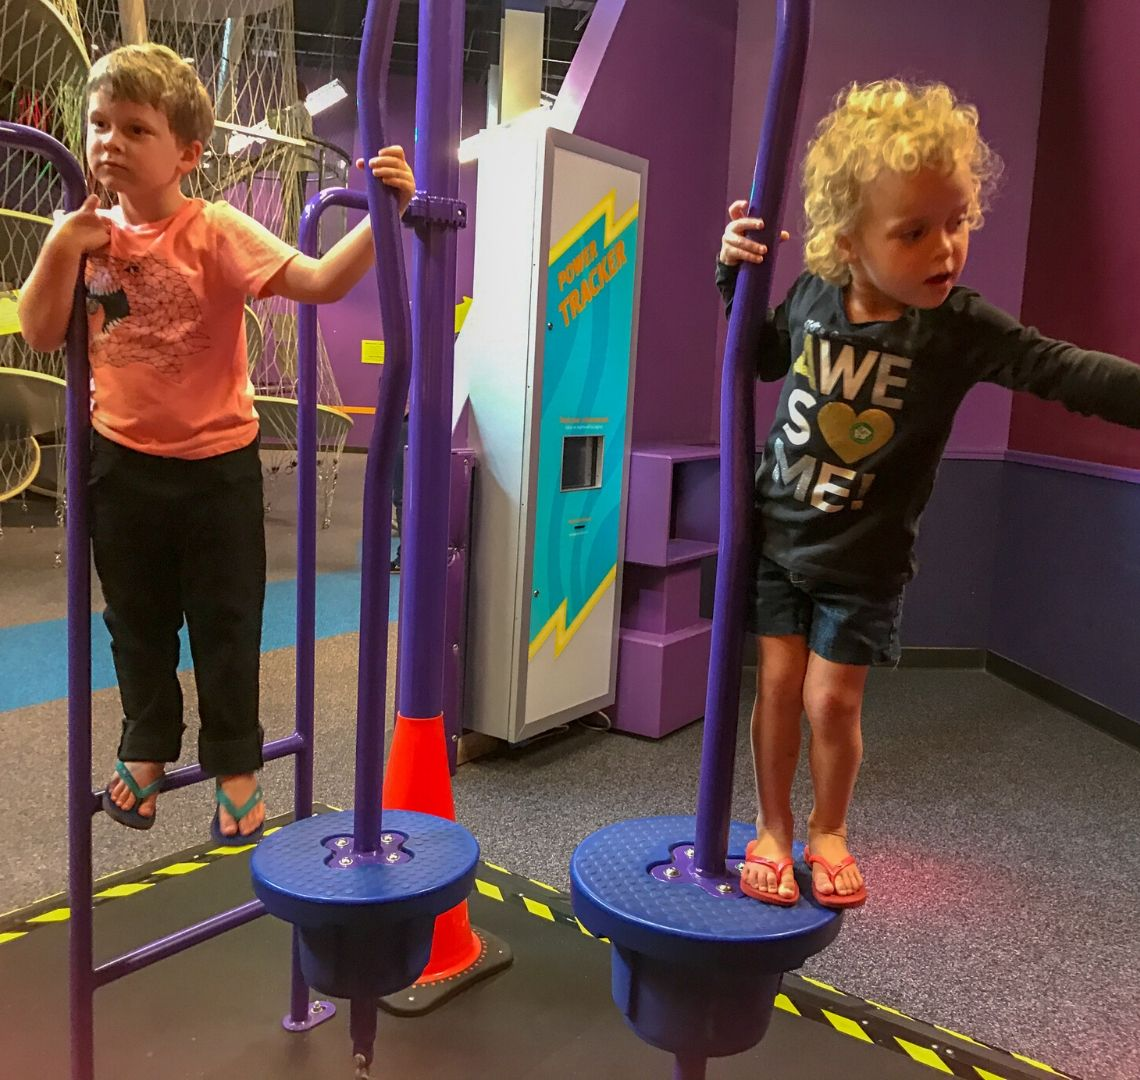 Thing 1 on the left in an orange t-shirt, black trousers and flip flops. Things 2 is in a black top with AWESOME written on it, denim shorts and flip flops. They are climbing and balancing on a purple exhibit at the Children's Museum of Houston